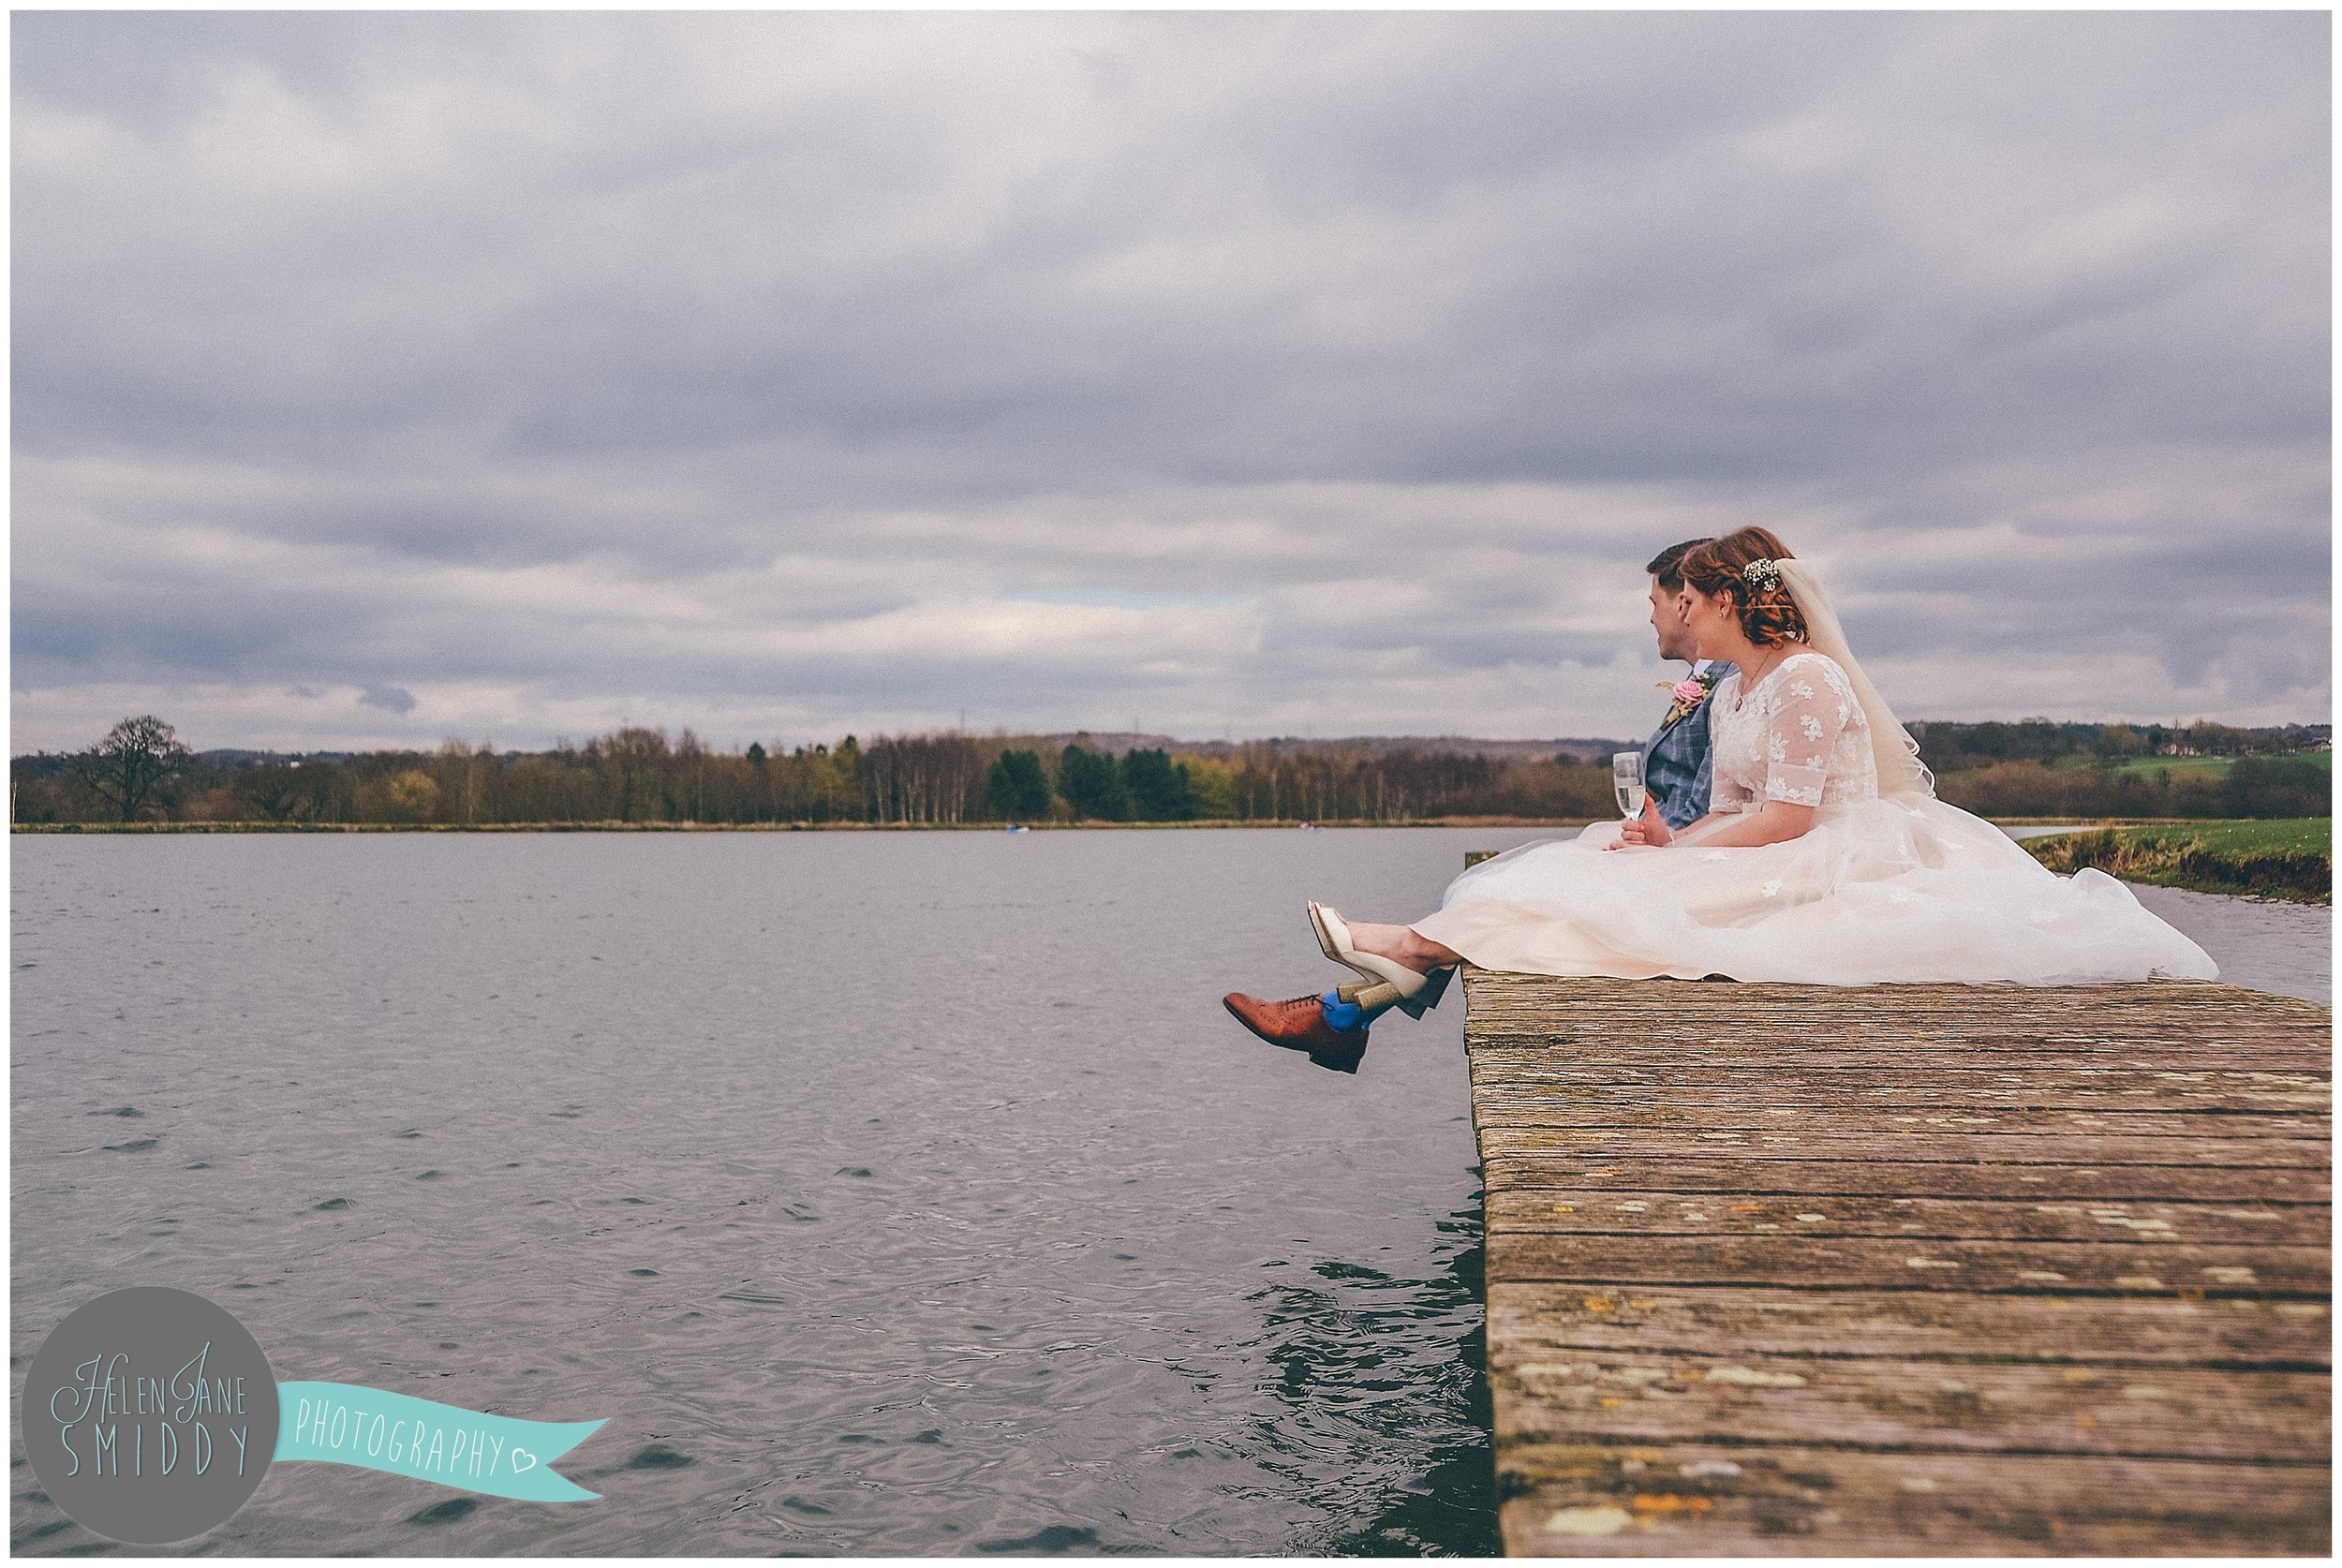 The perfect spring time wedding theme is on a waters edge.